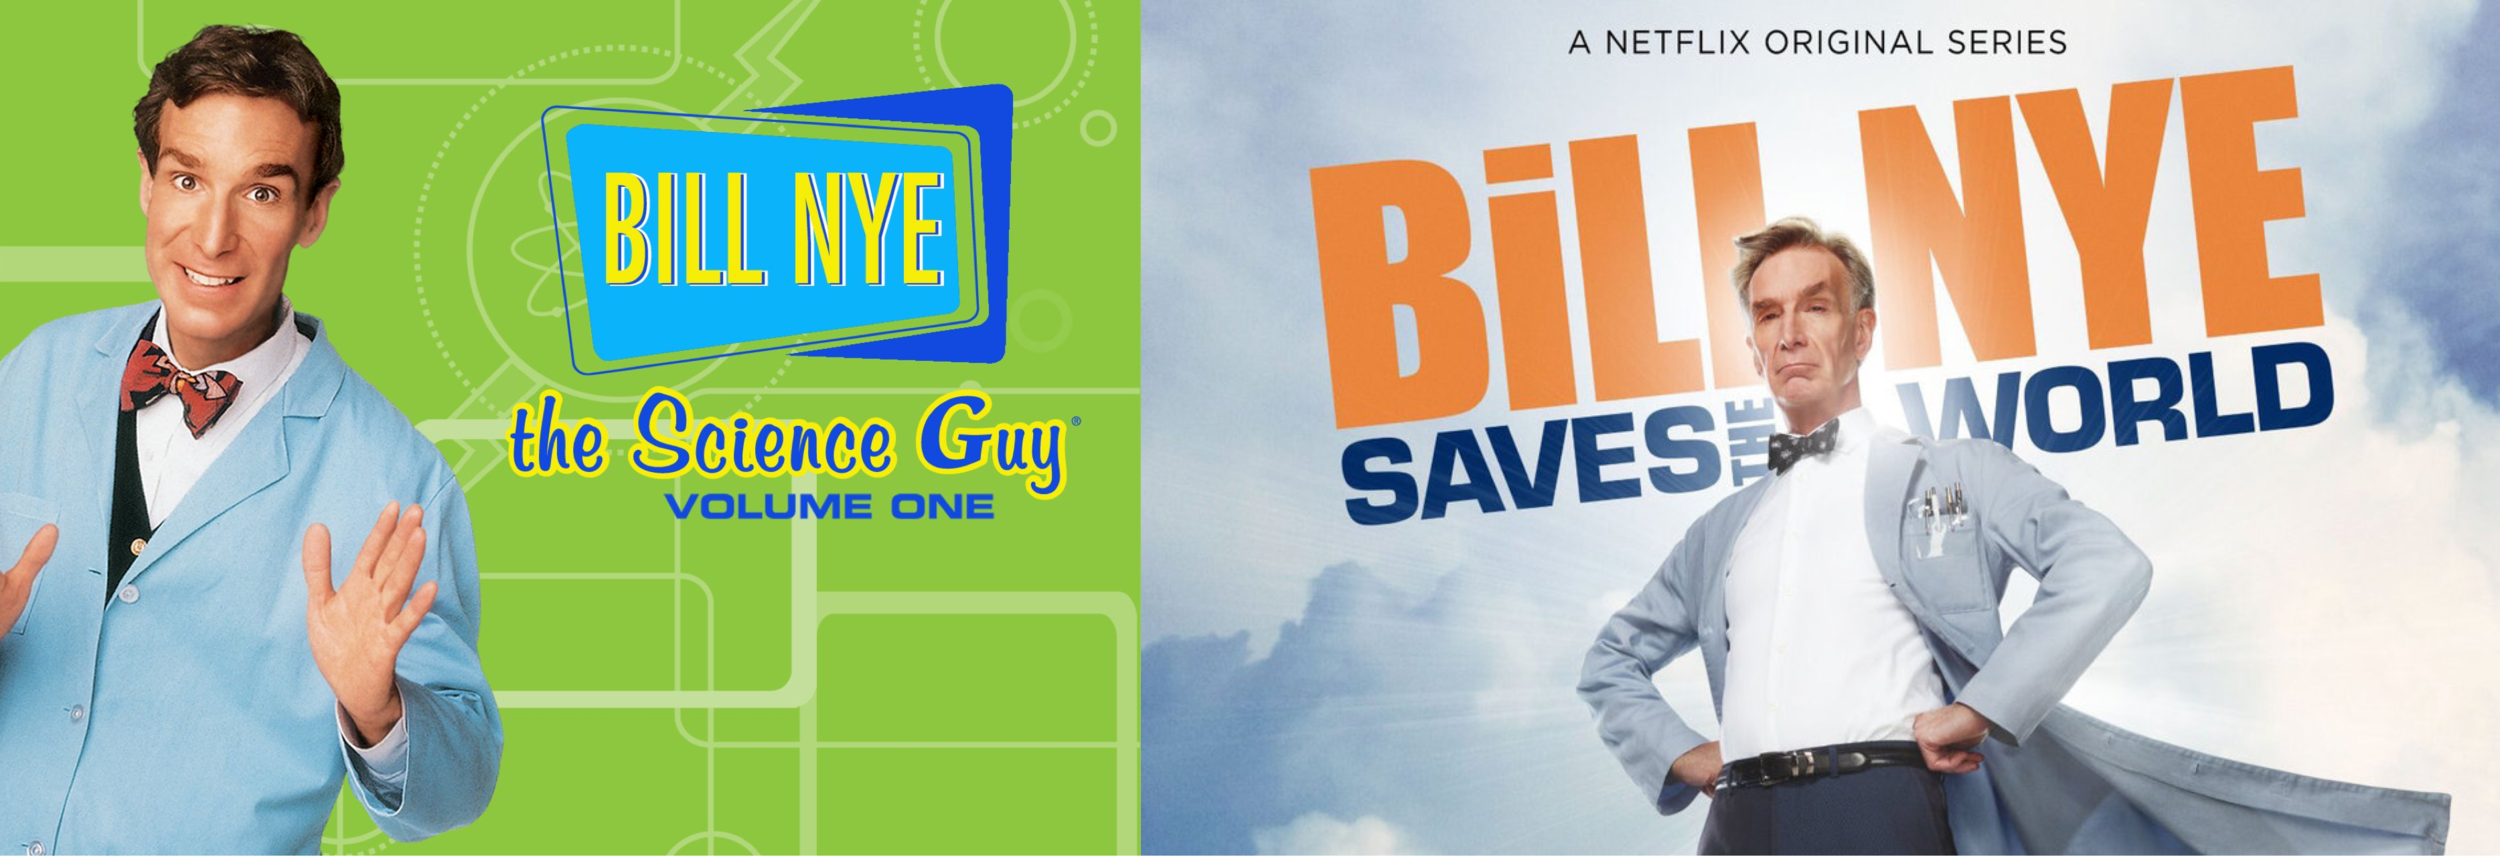 The original Bill Nye, the Science Guy on Disney in the nineties, now back and streaming on Netflix in 2017.